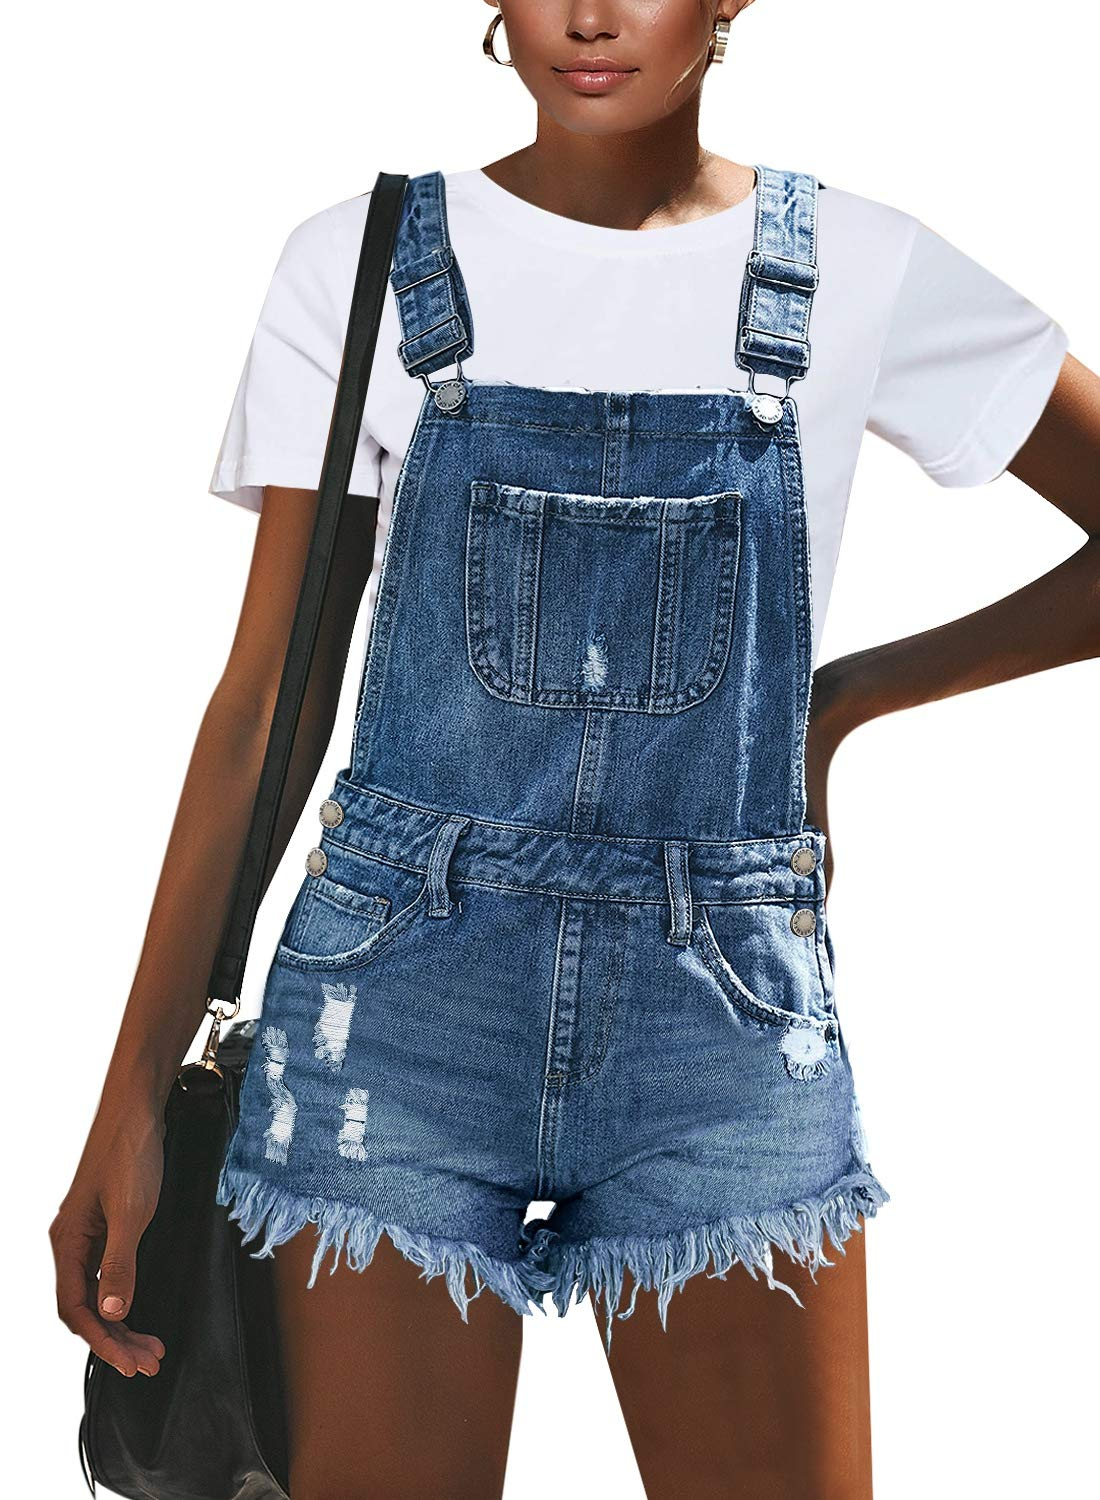 luvamia Women's Ripped Short Overalls Adjustable Stretchy Denim Overall Shorts Romper A-Light Blue Size Medium by luvamia